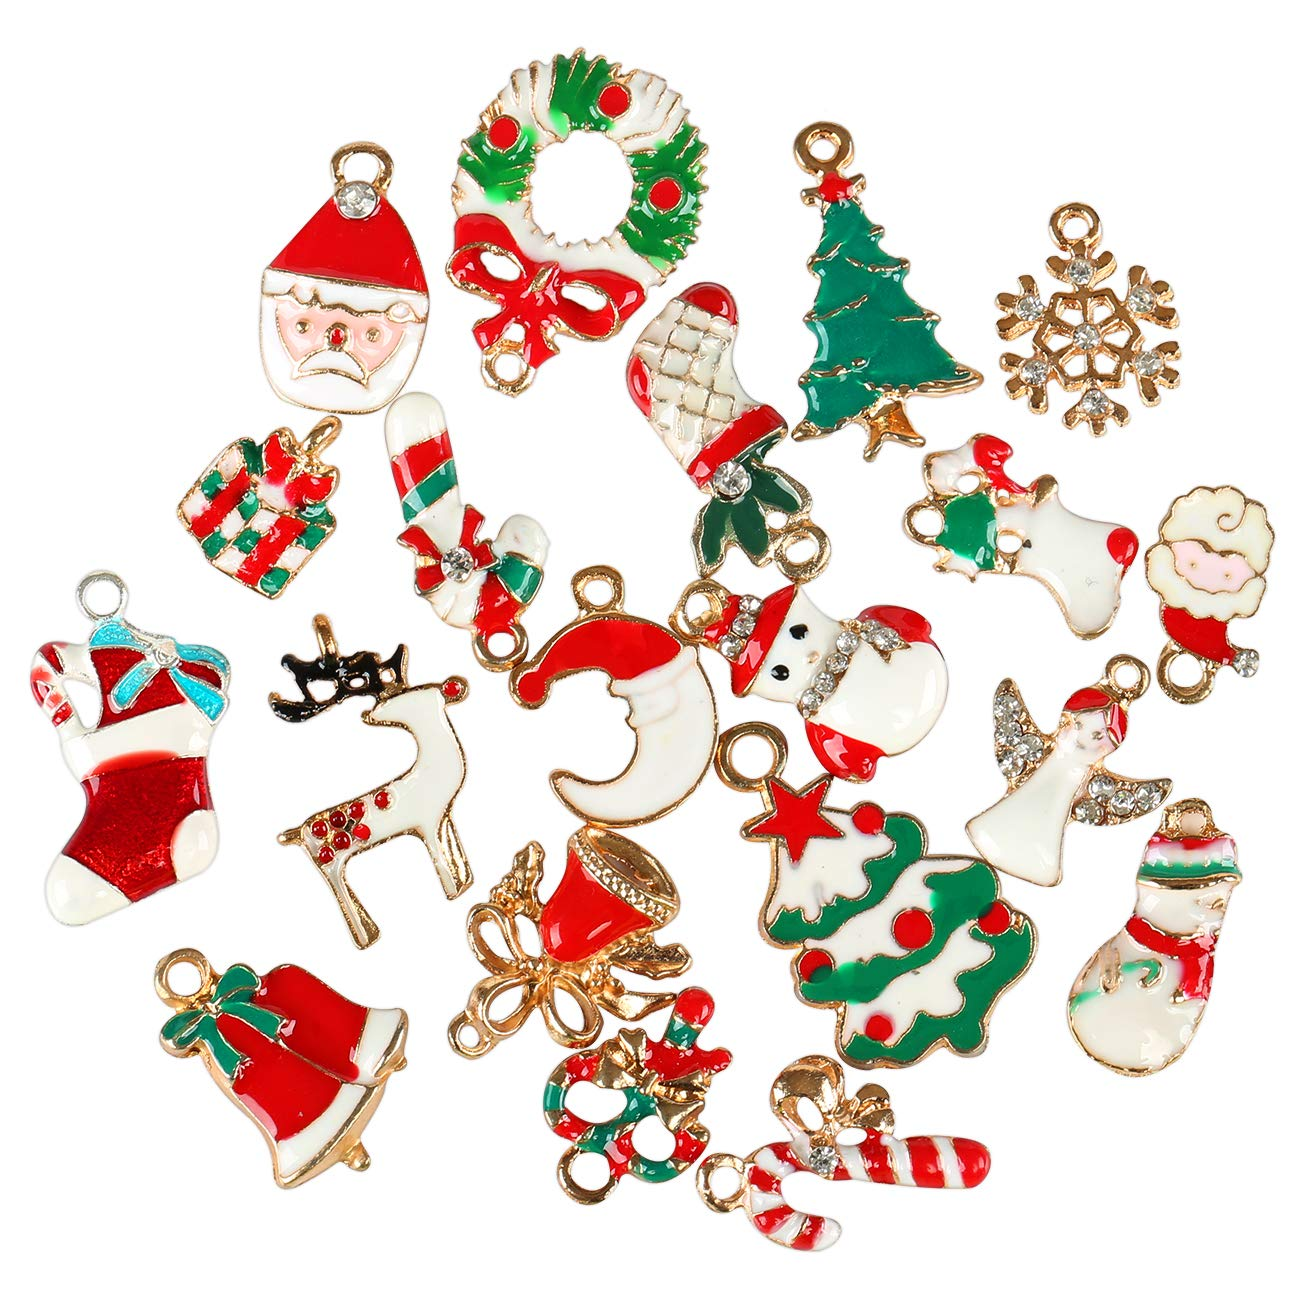 Naler 20pcs Christmas Charms Pendants for Bracelet Necklace Jewelry Making Scrapbooking Xmas Party Decoration Costume